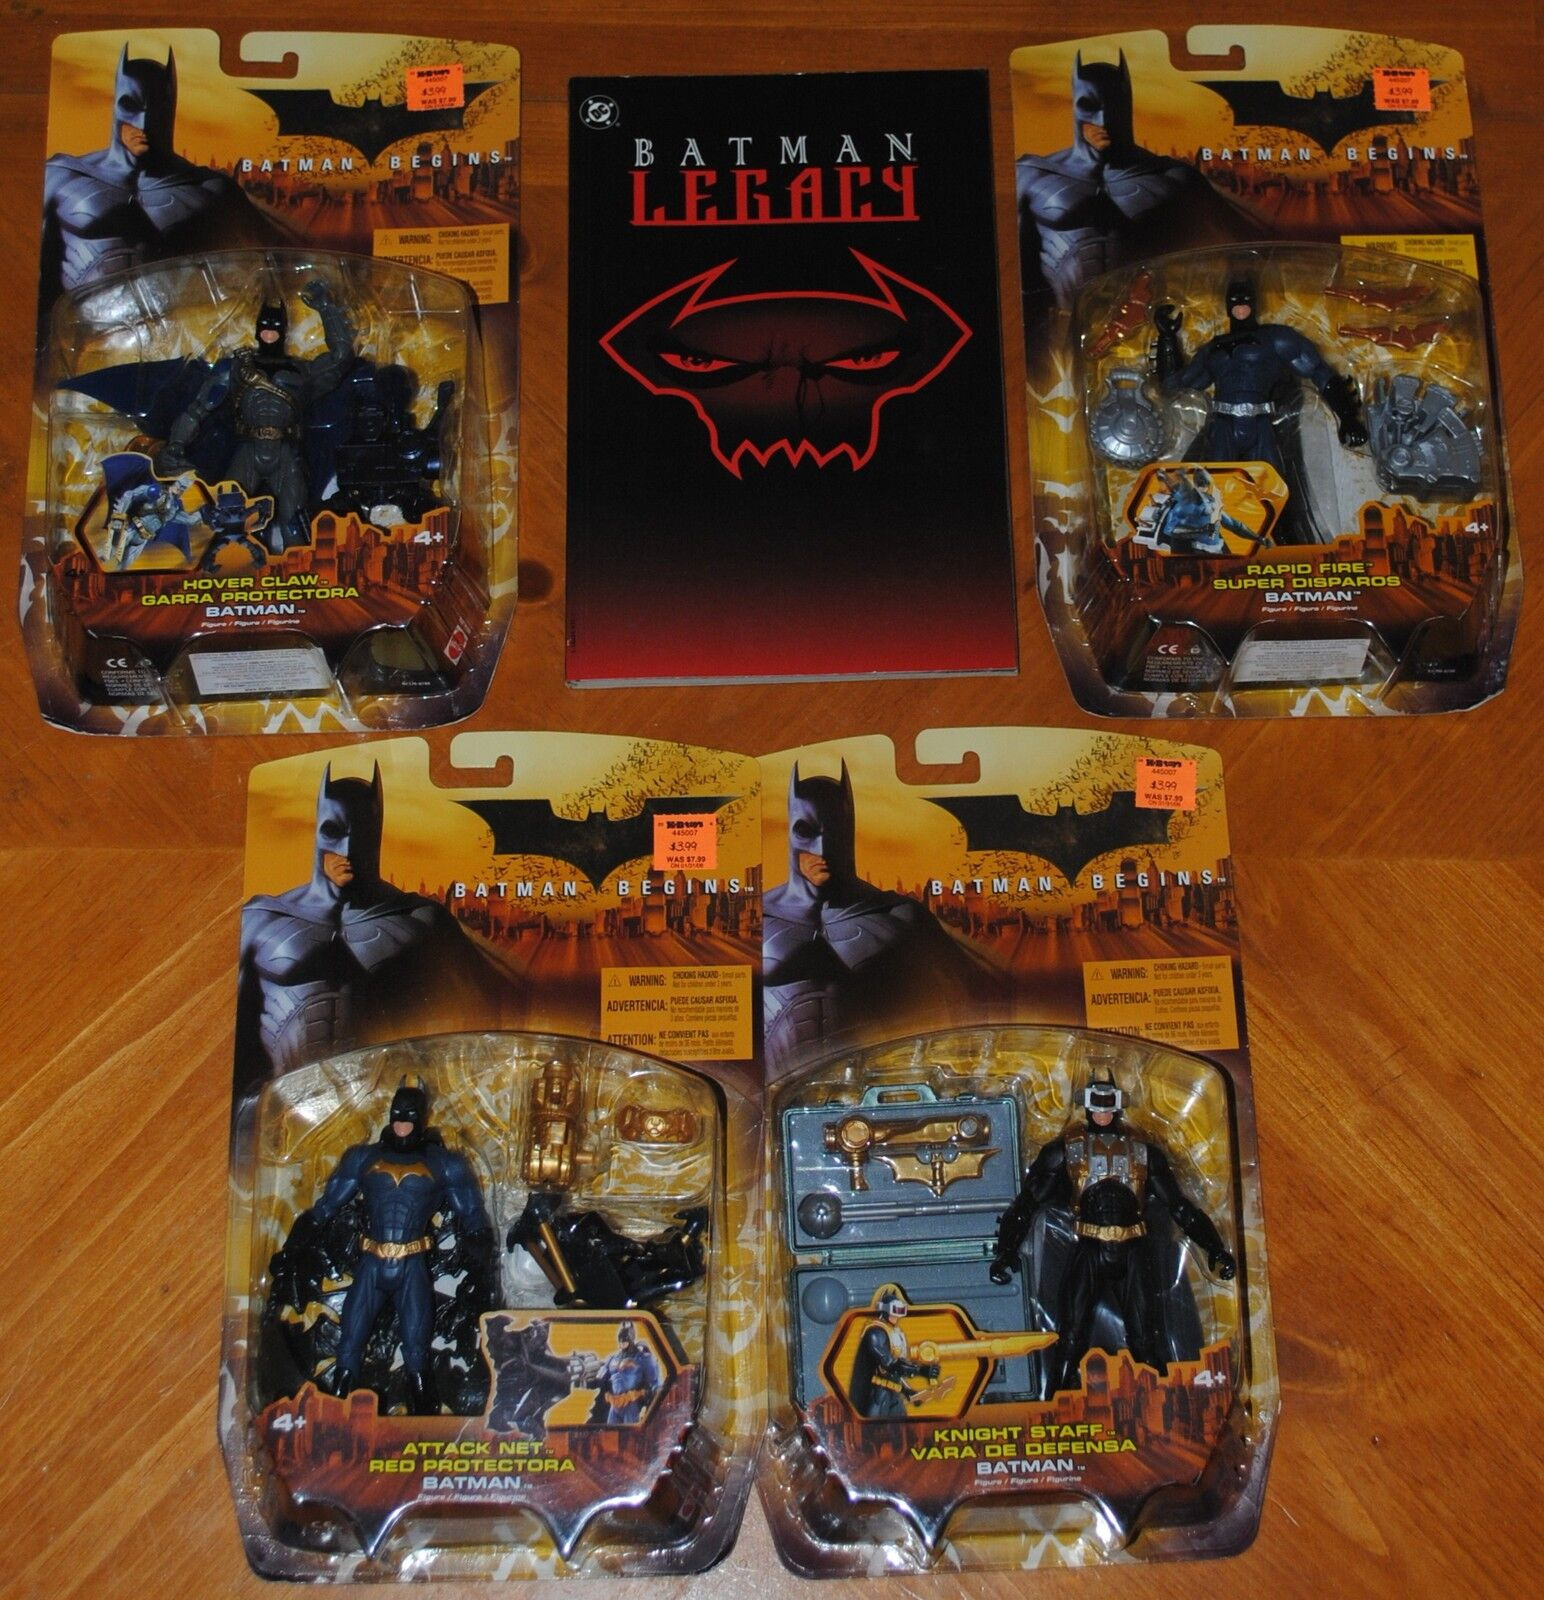 4 BATMAN FIGURES FROM BATMAN BEGINS & VERY RARE BATMAN COMIC BOOK - LEGACY